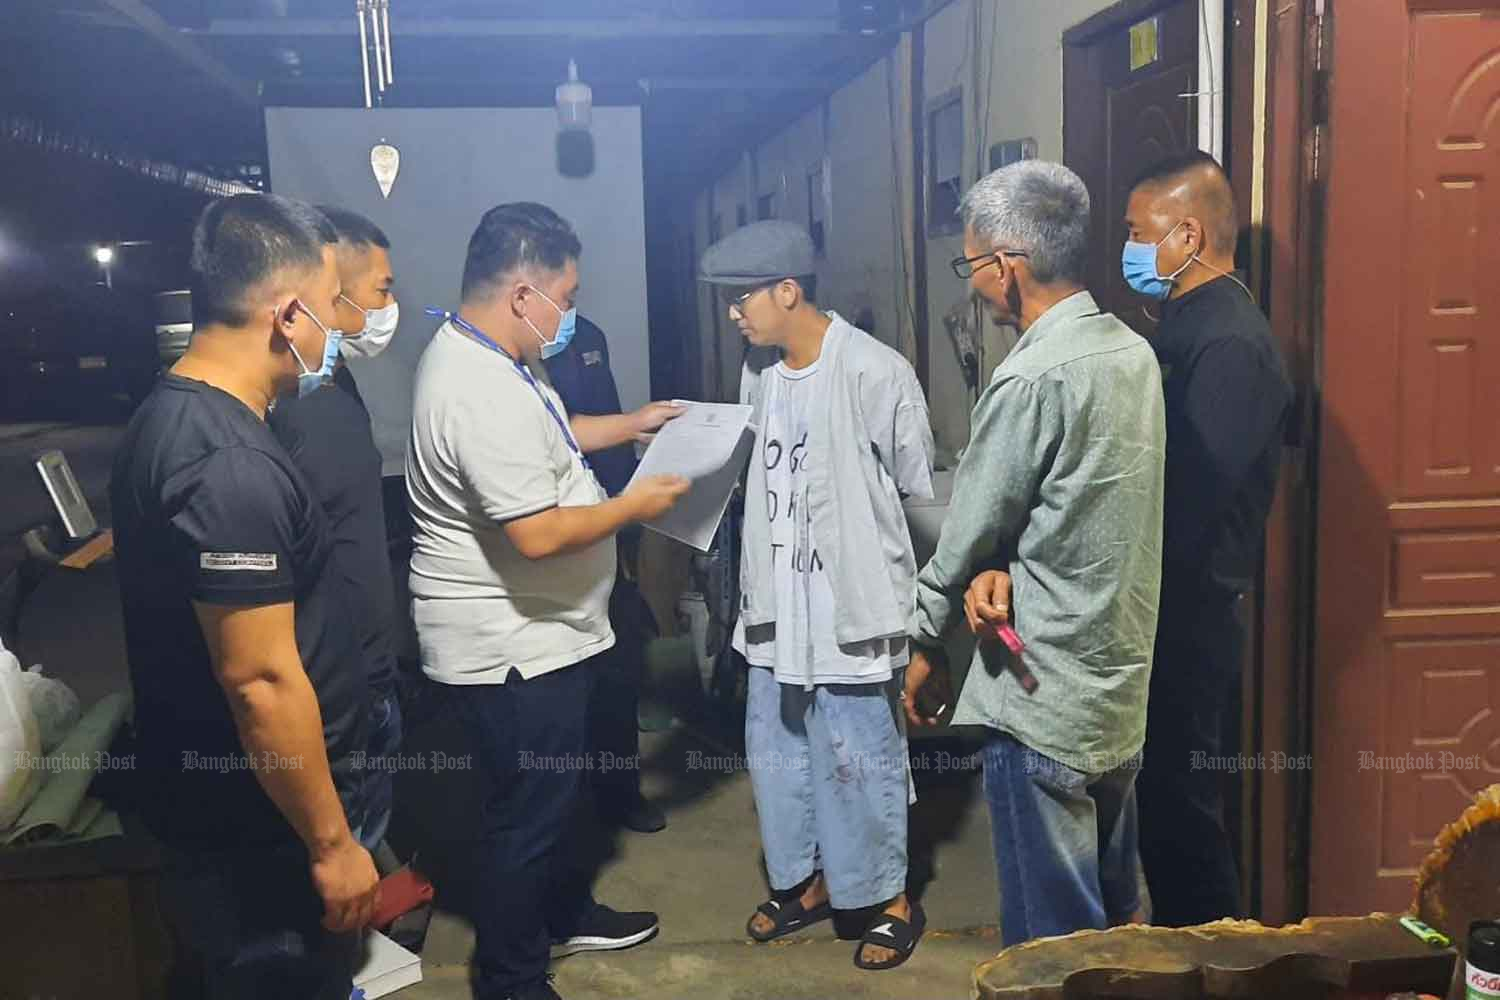 Singer arrested on lese majeste charge